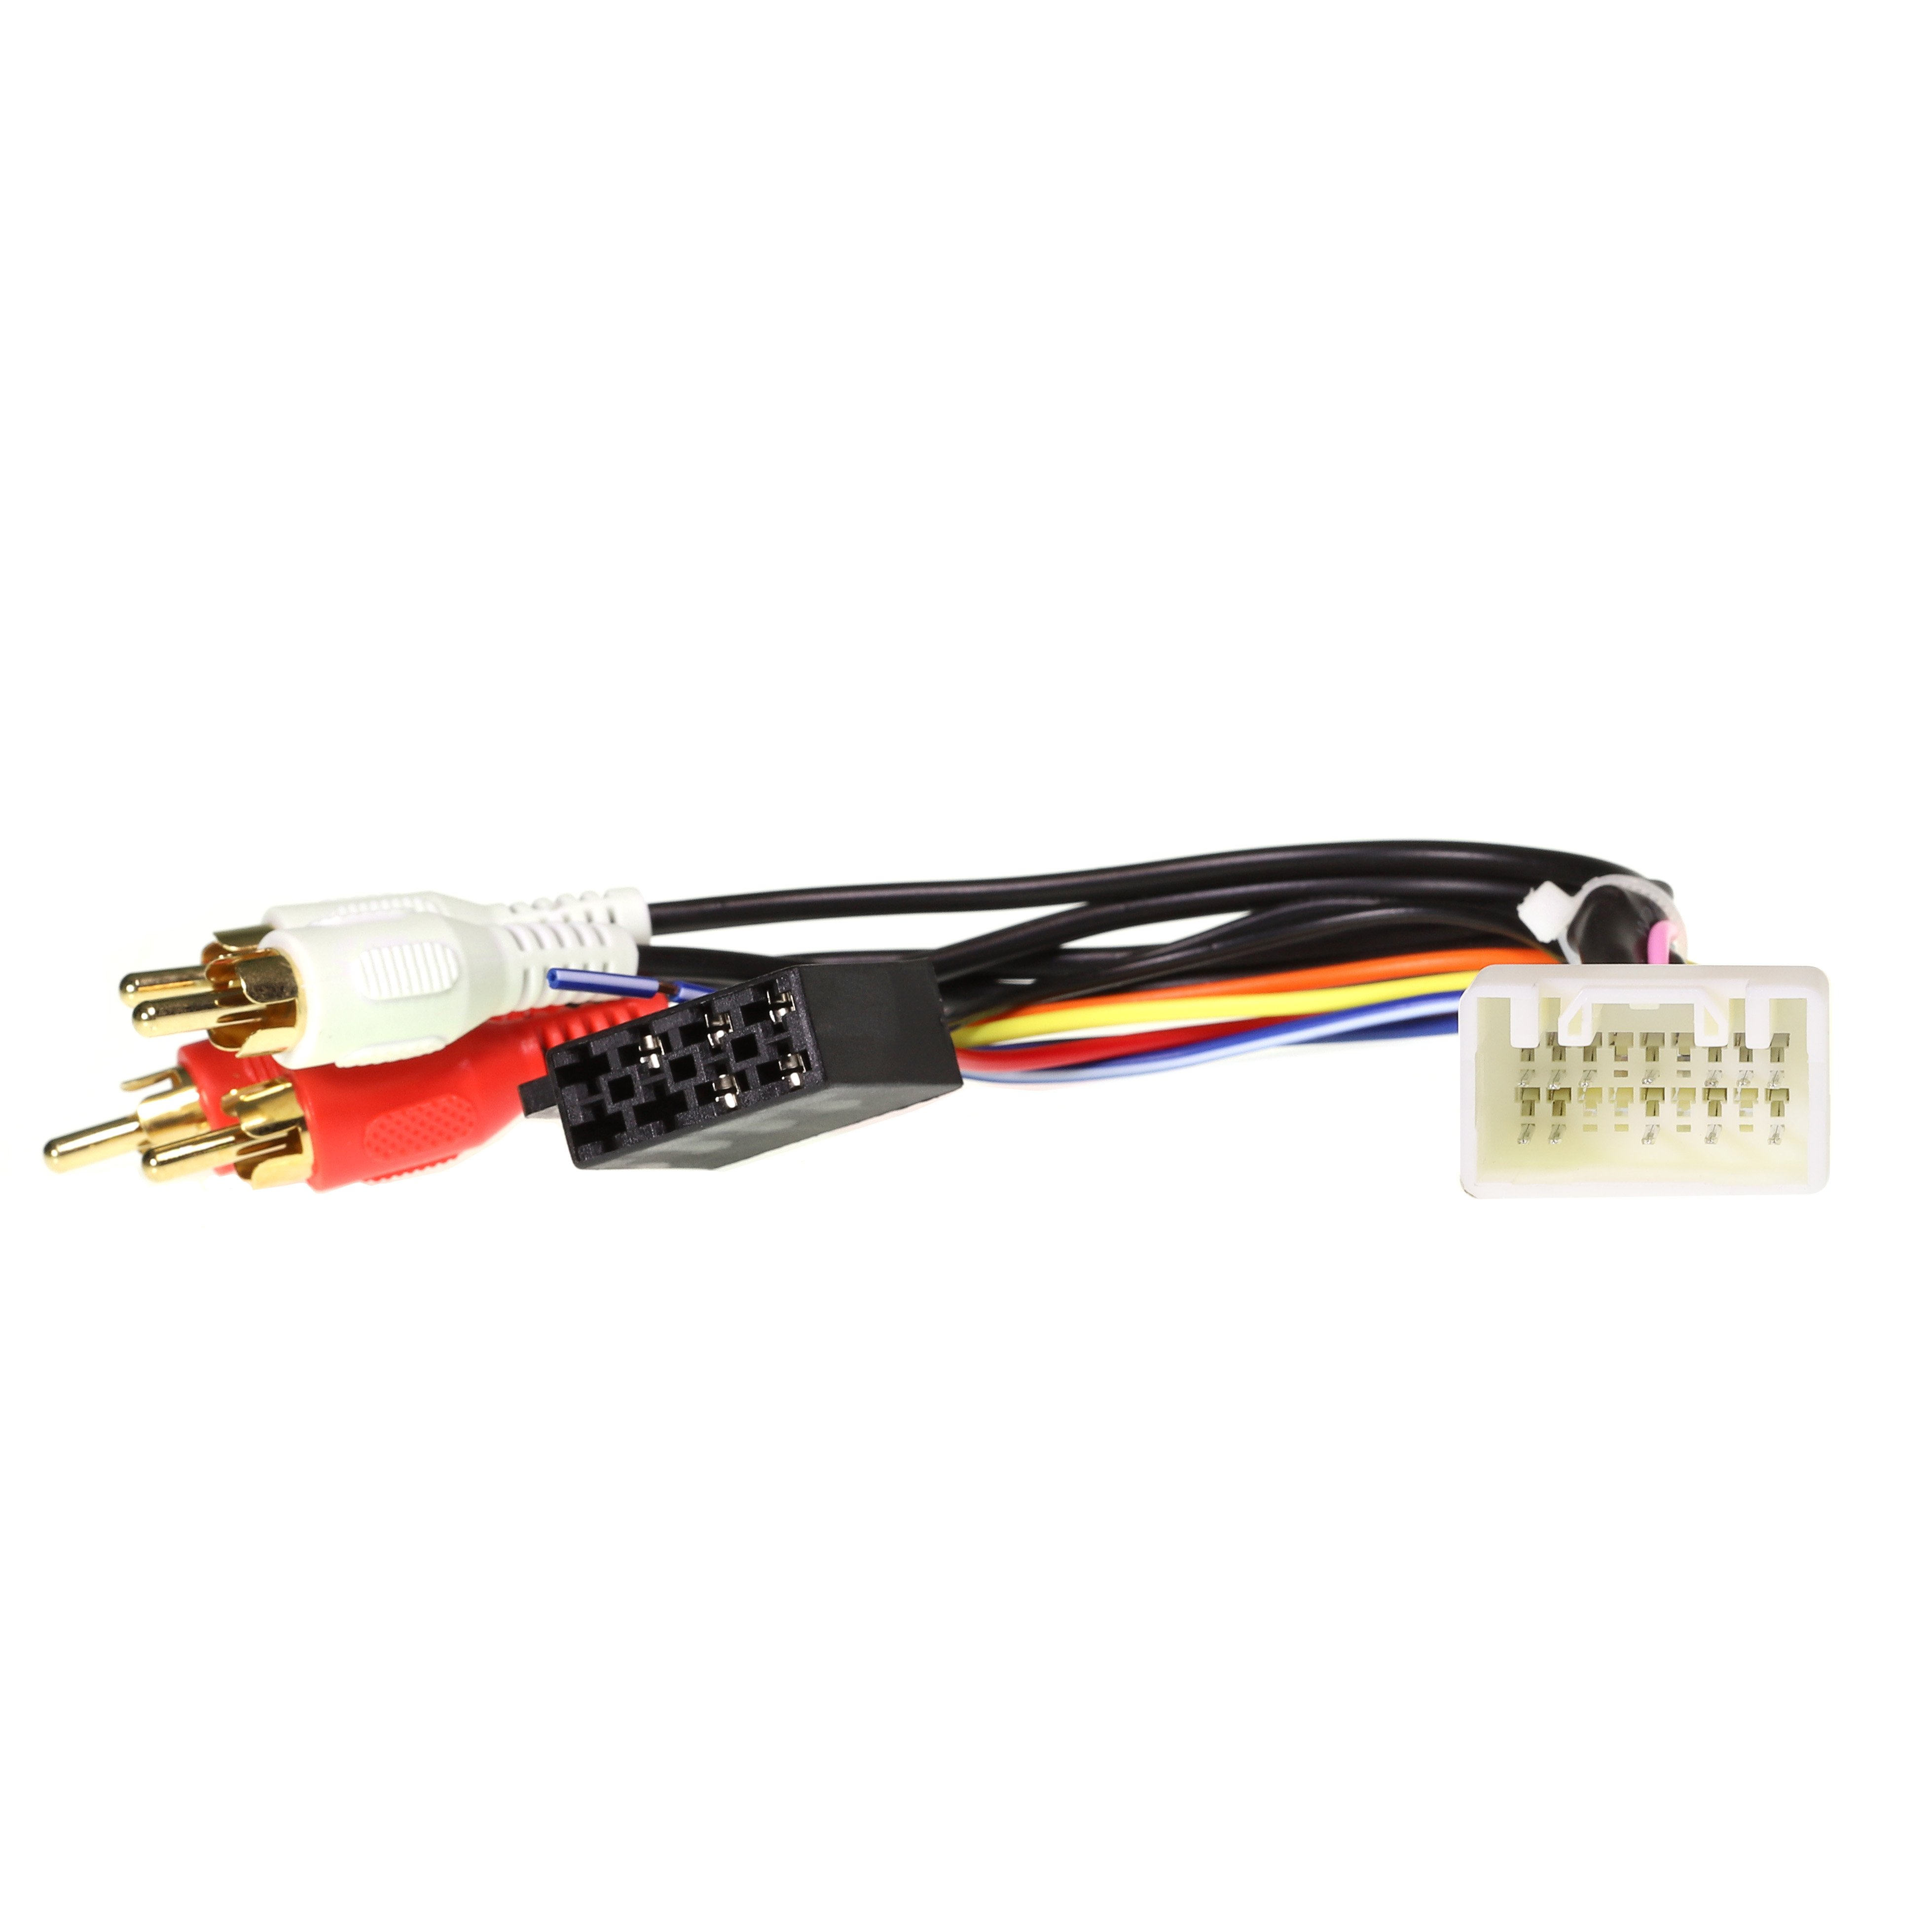 Primary Harnesses Iso Aerpro Chrysler Wiring Adapter App0259 To Suit Toyota Lexus